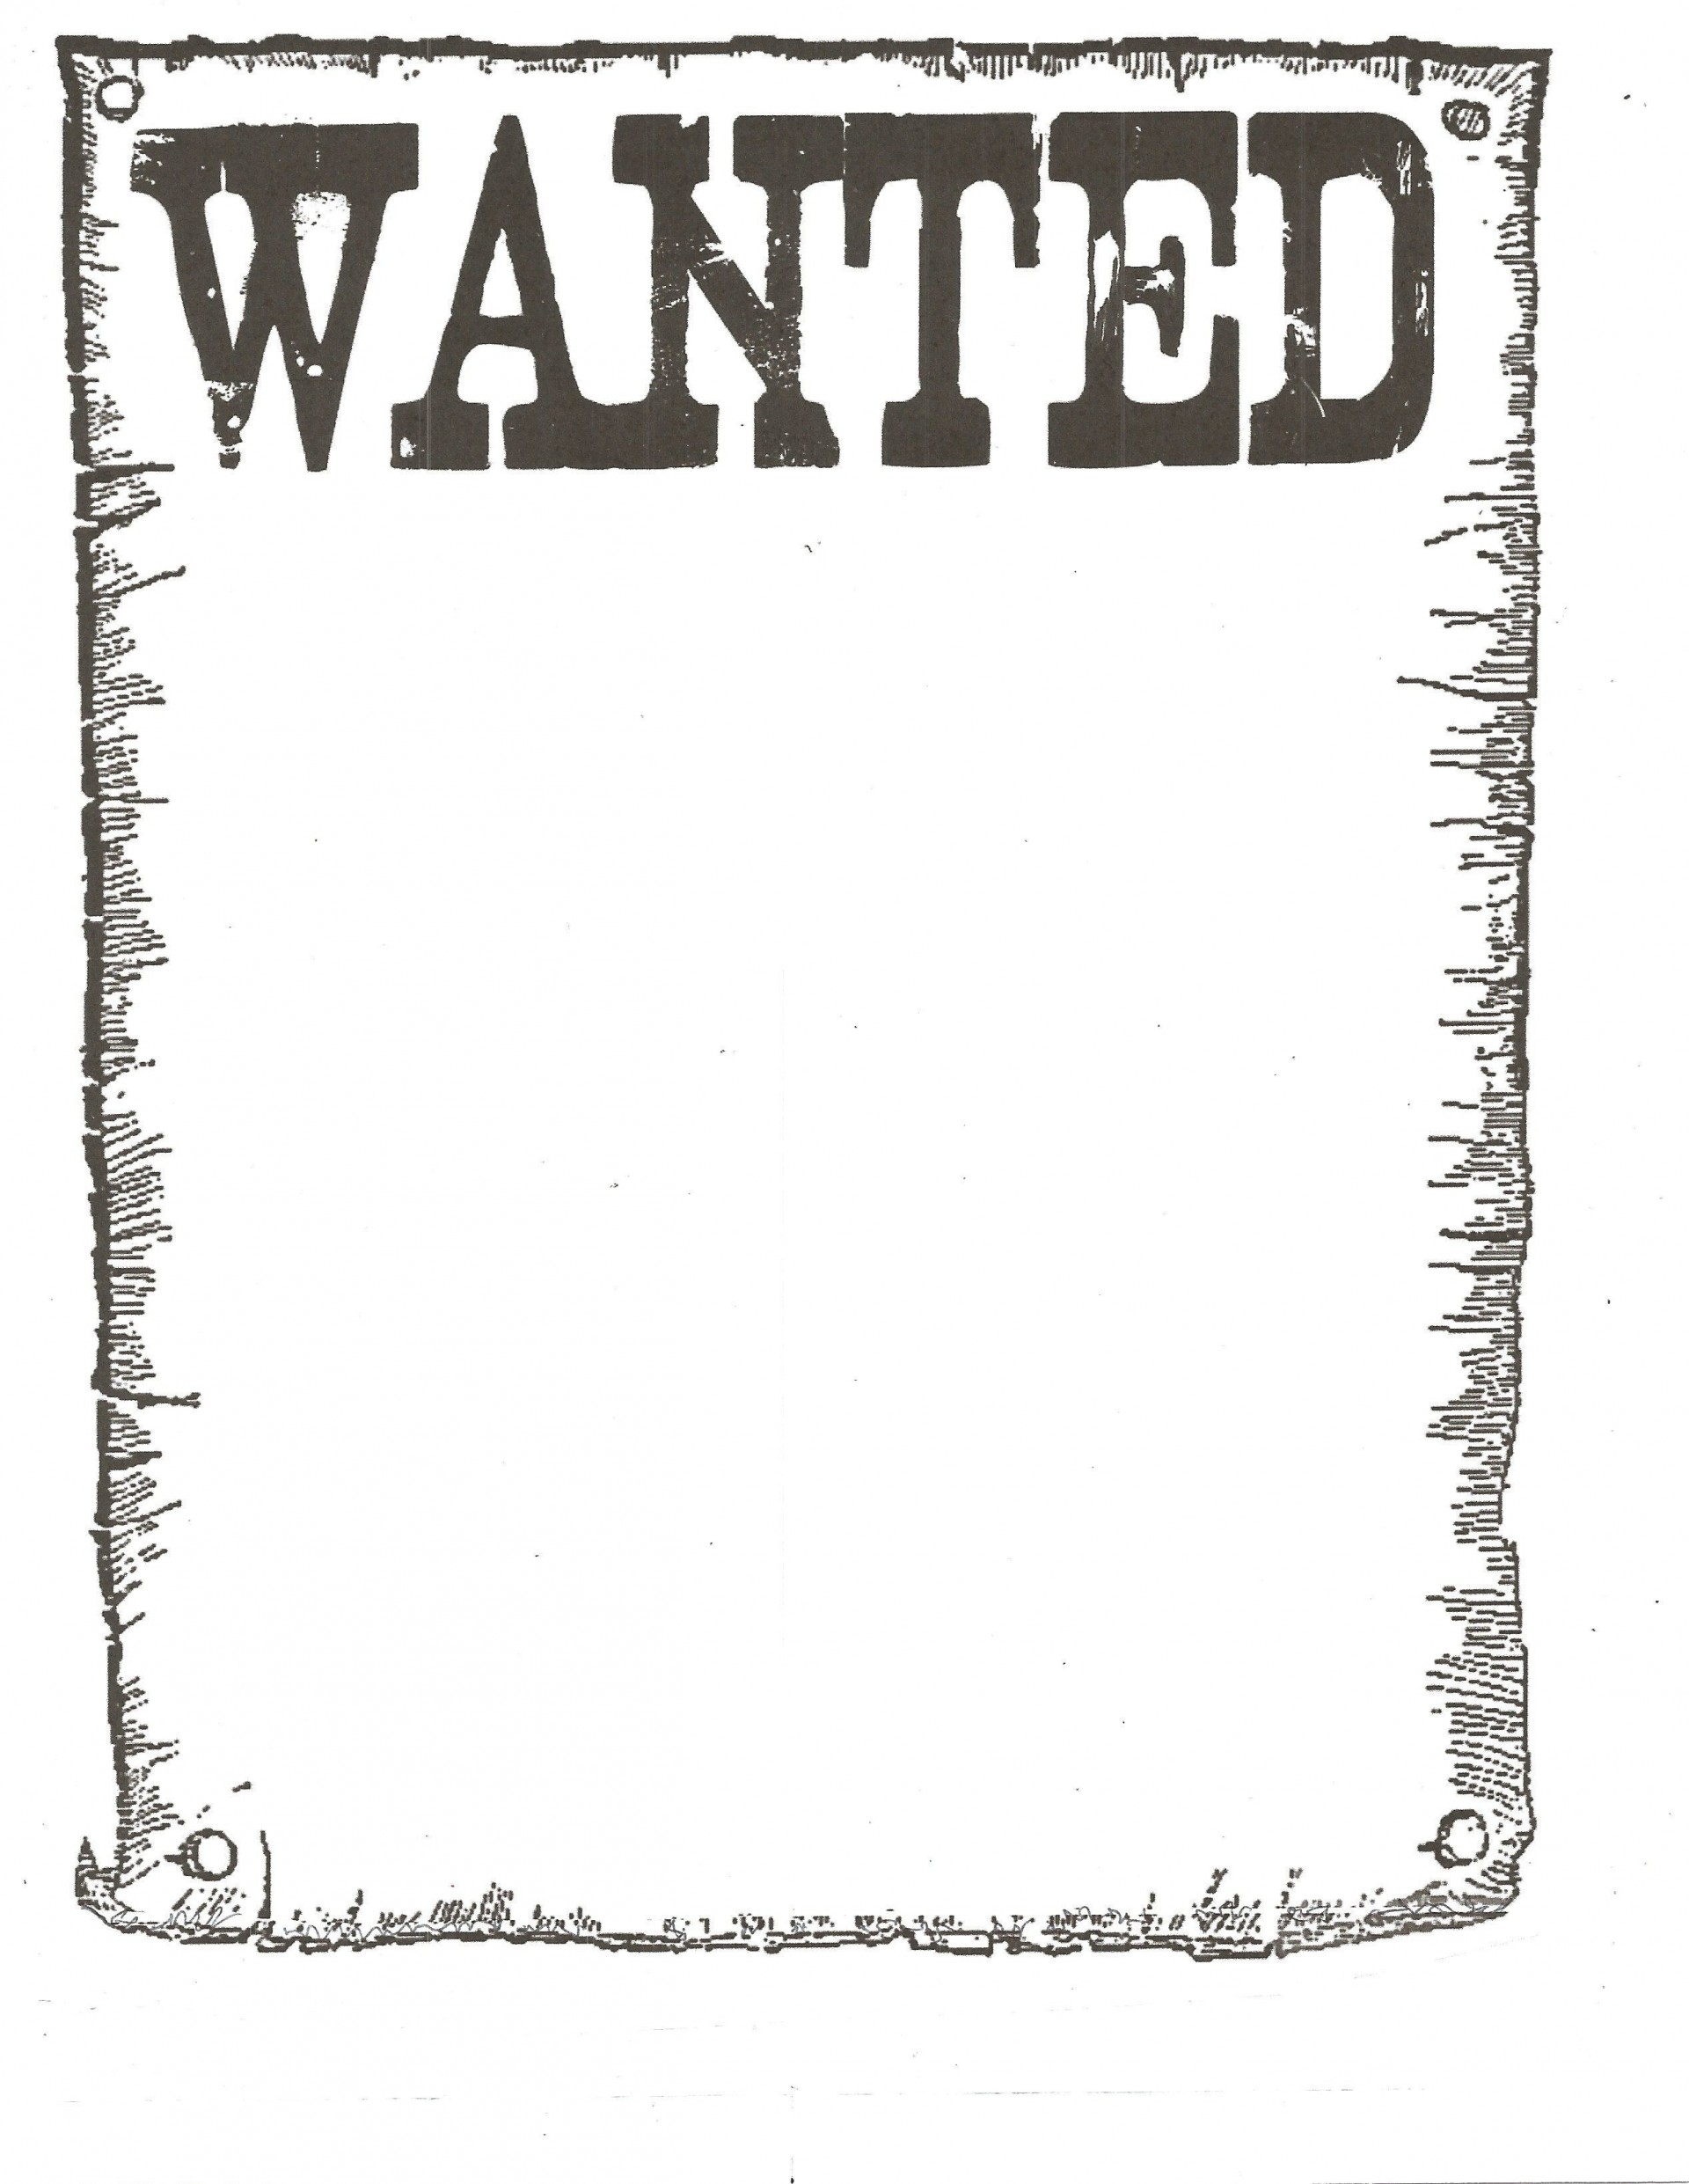 005 Impressive Wanted Poster Template Free Printable Design  Most1920